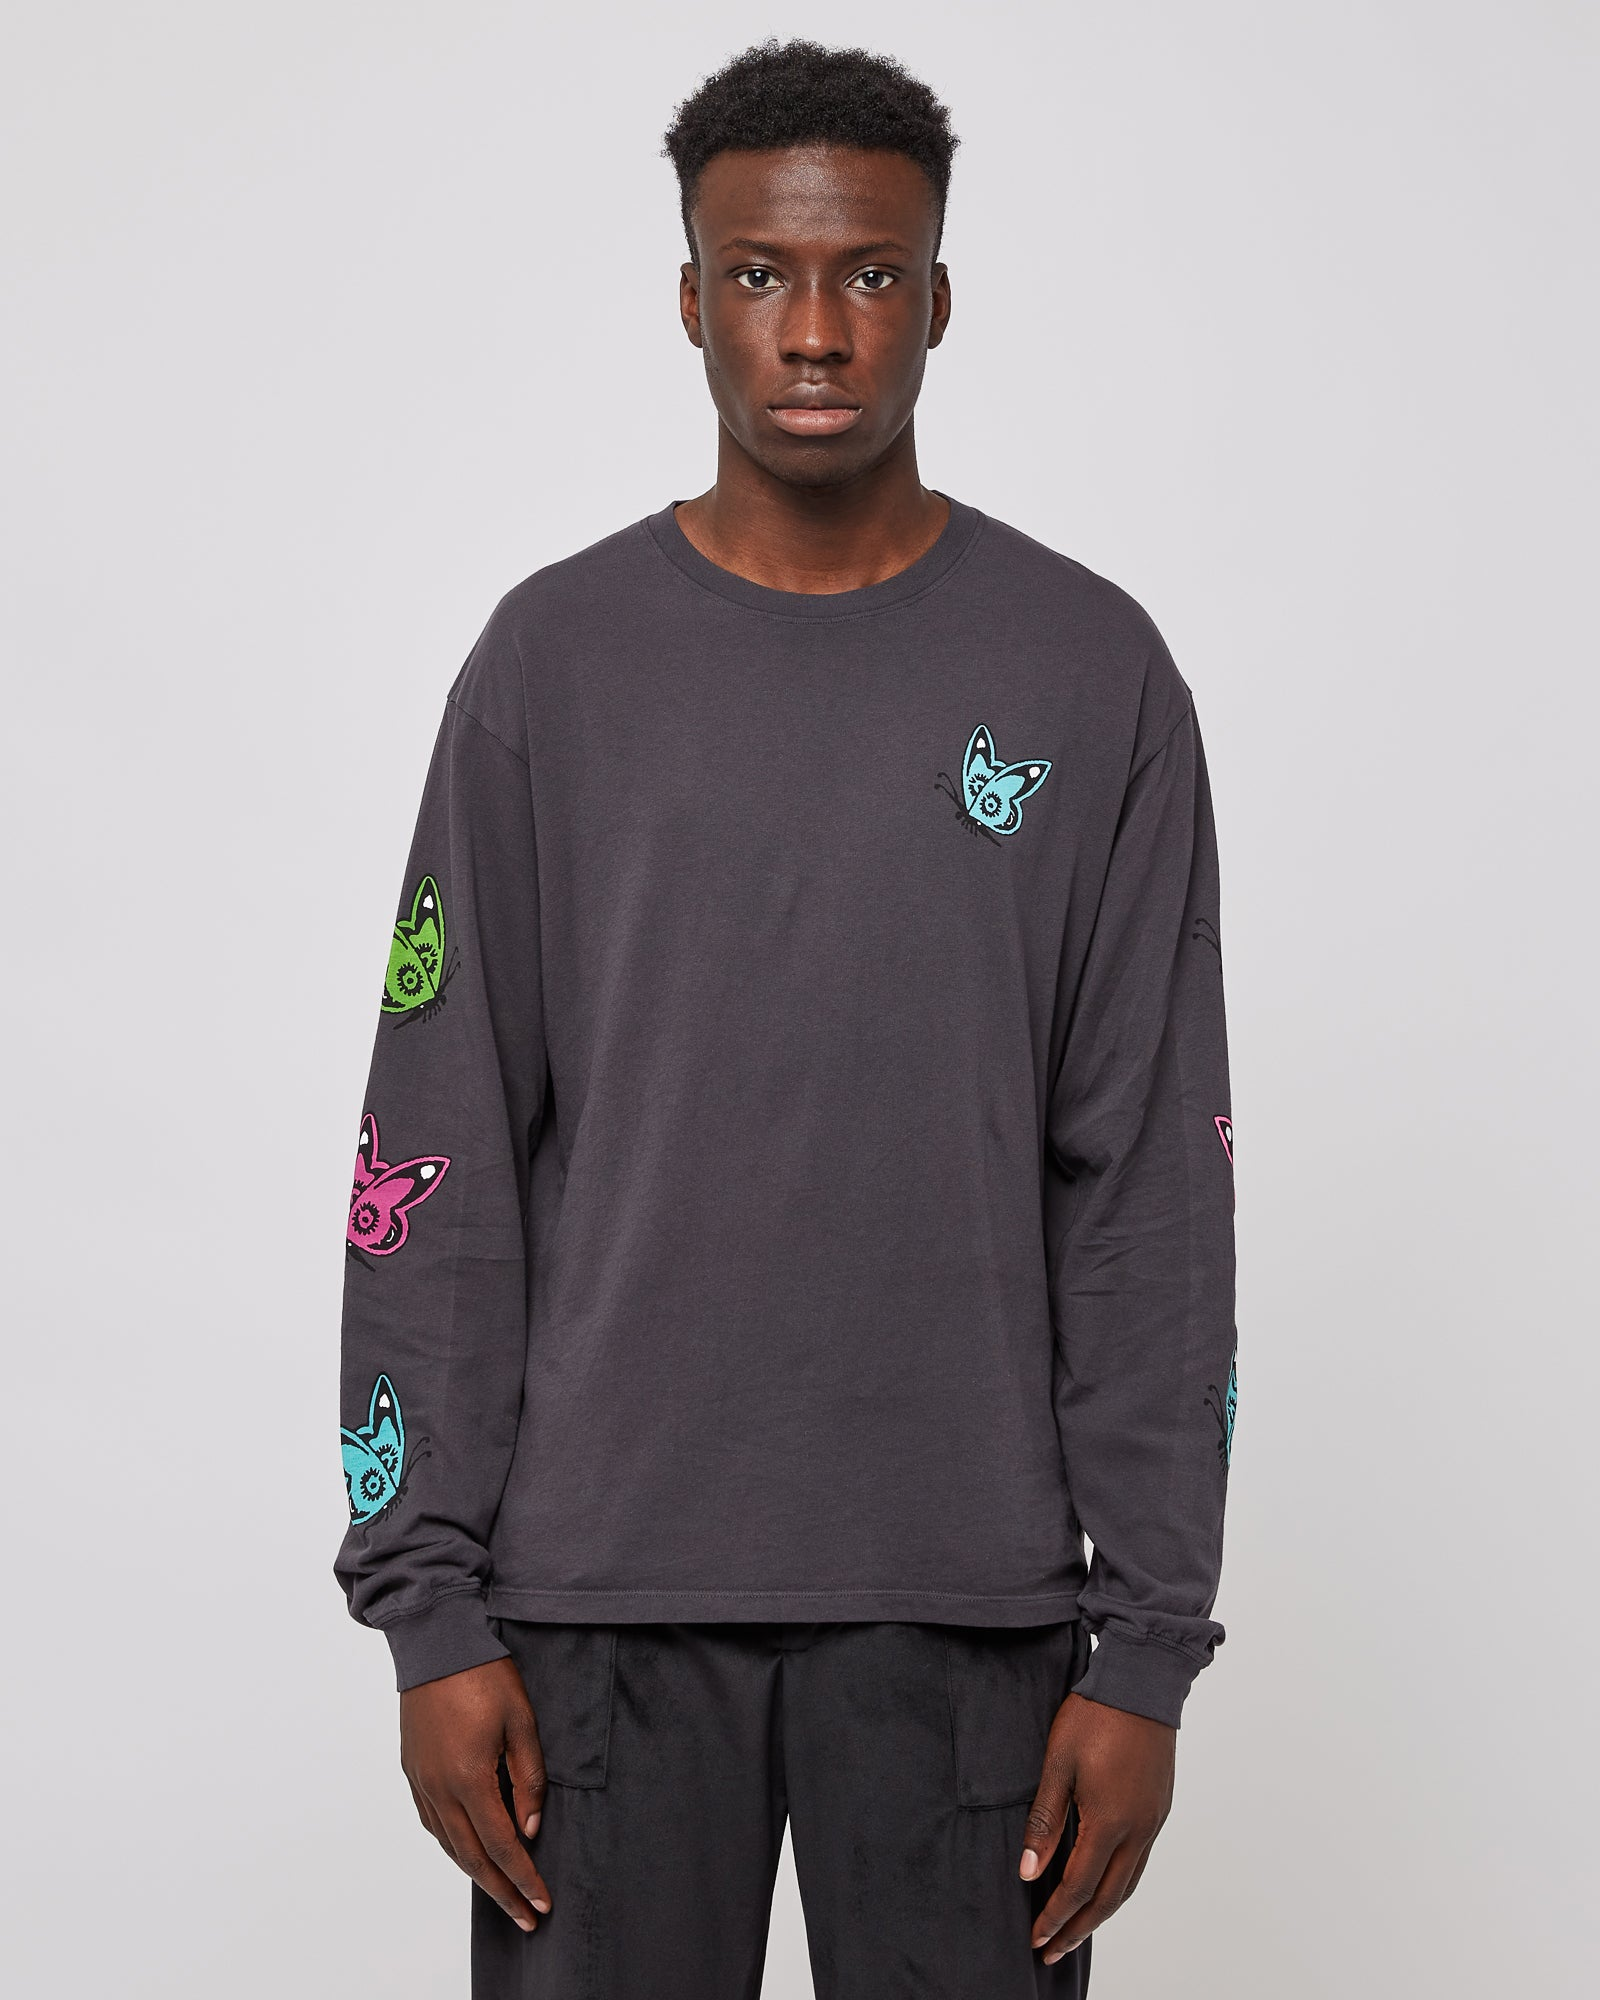 Love Like This L/s T-Shirt in Charcoal